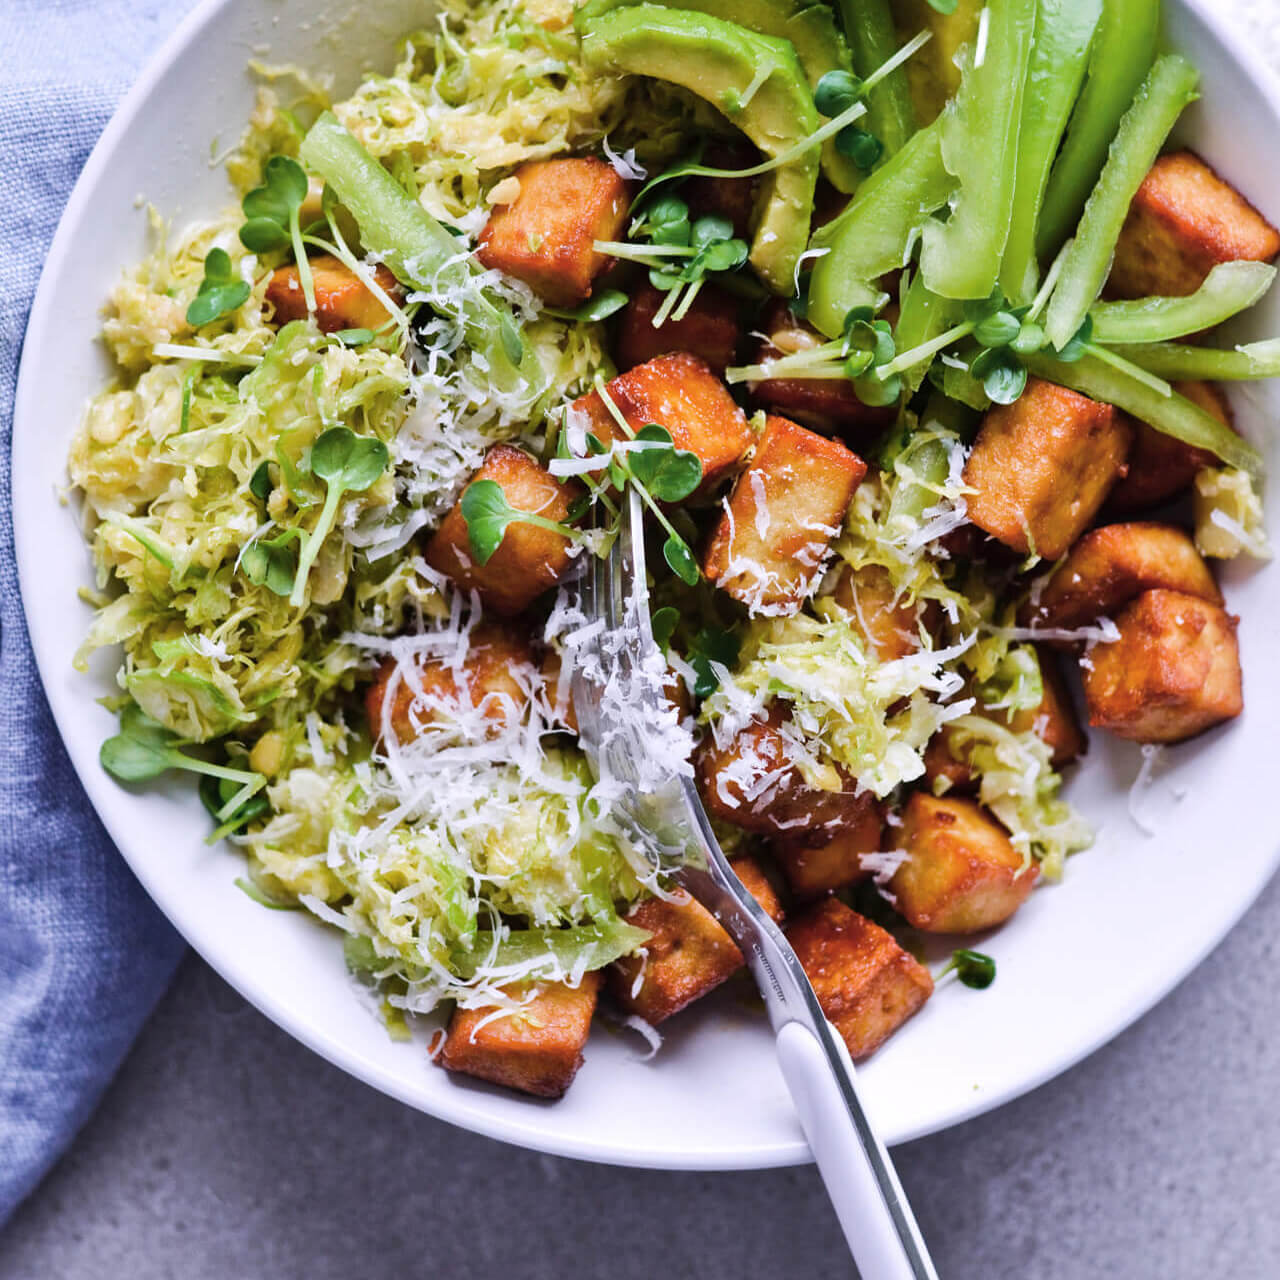 Recipe for Crispy tofu shaved brussels sprout salad with honey mustard dressing, pine nuts and Parmesan. Easy to make, very filling and vegetarian meal. | sugarsalted.com